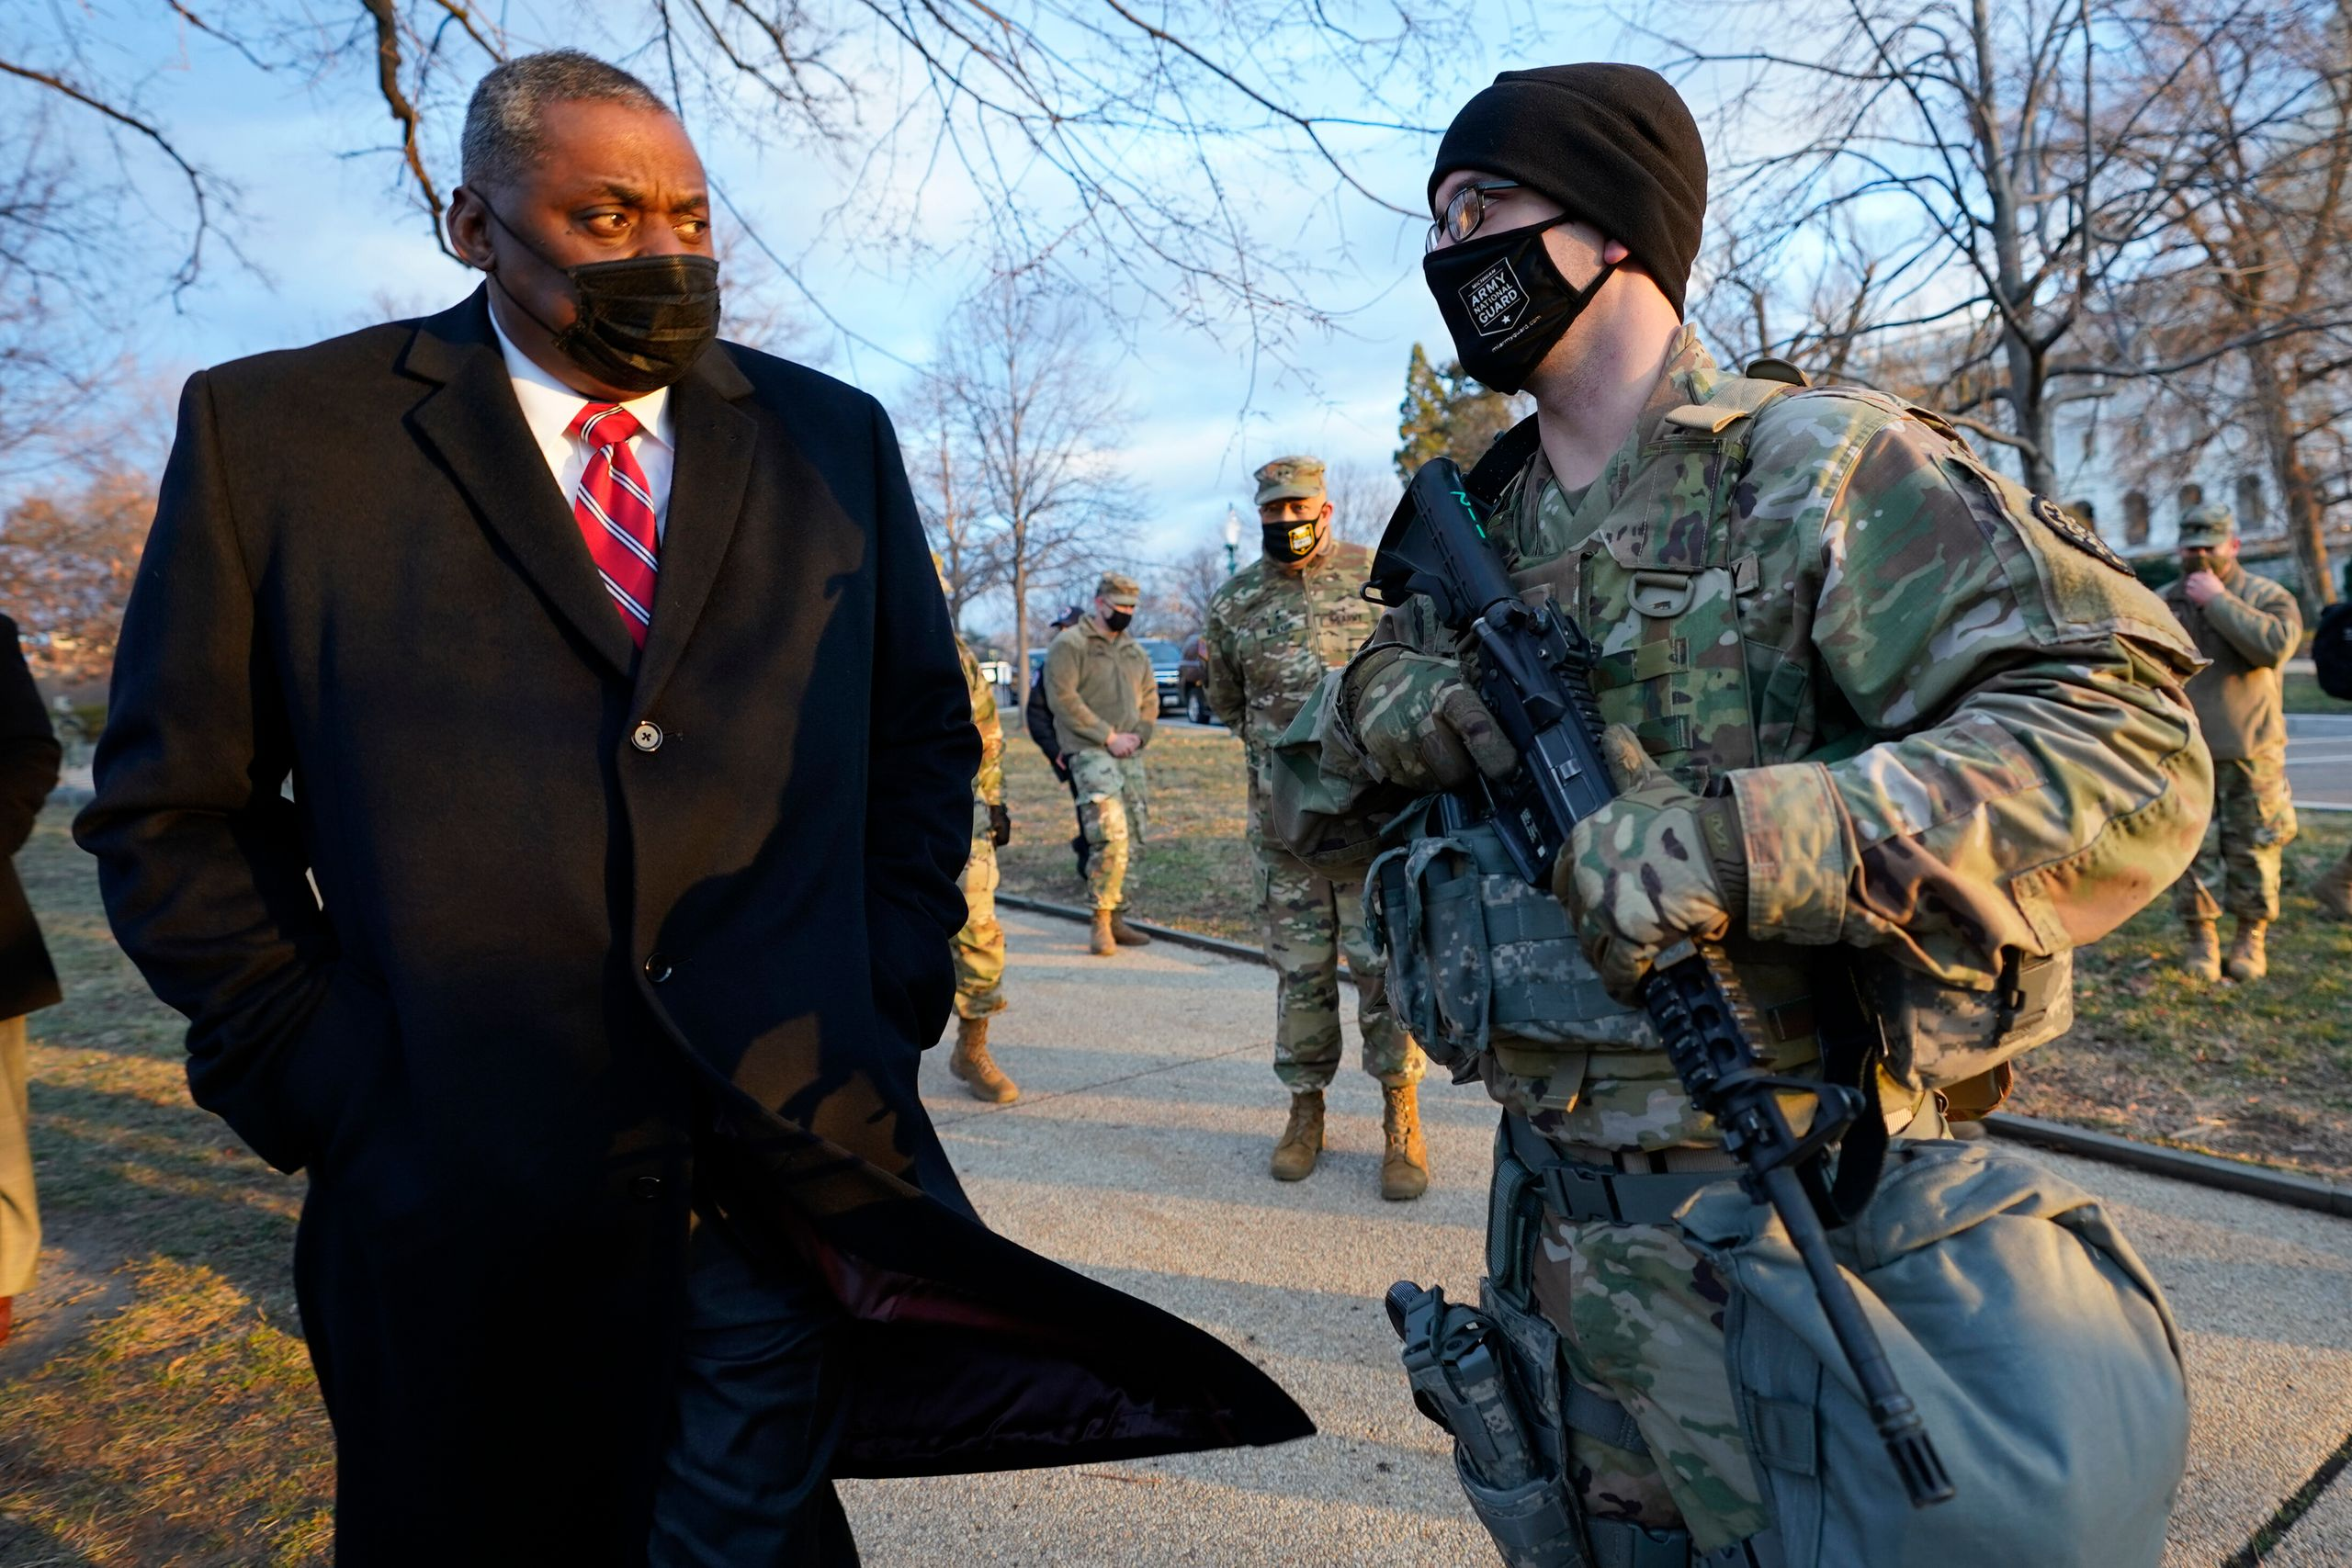 Secretary of Defense Lloyd Austin visits National Guard troops deployed at the U.S. Capitol on Jan. 29, 2021.